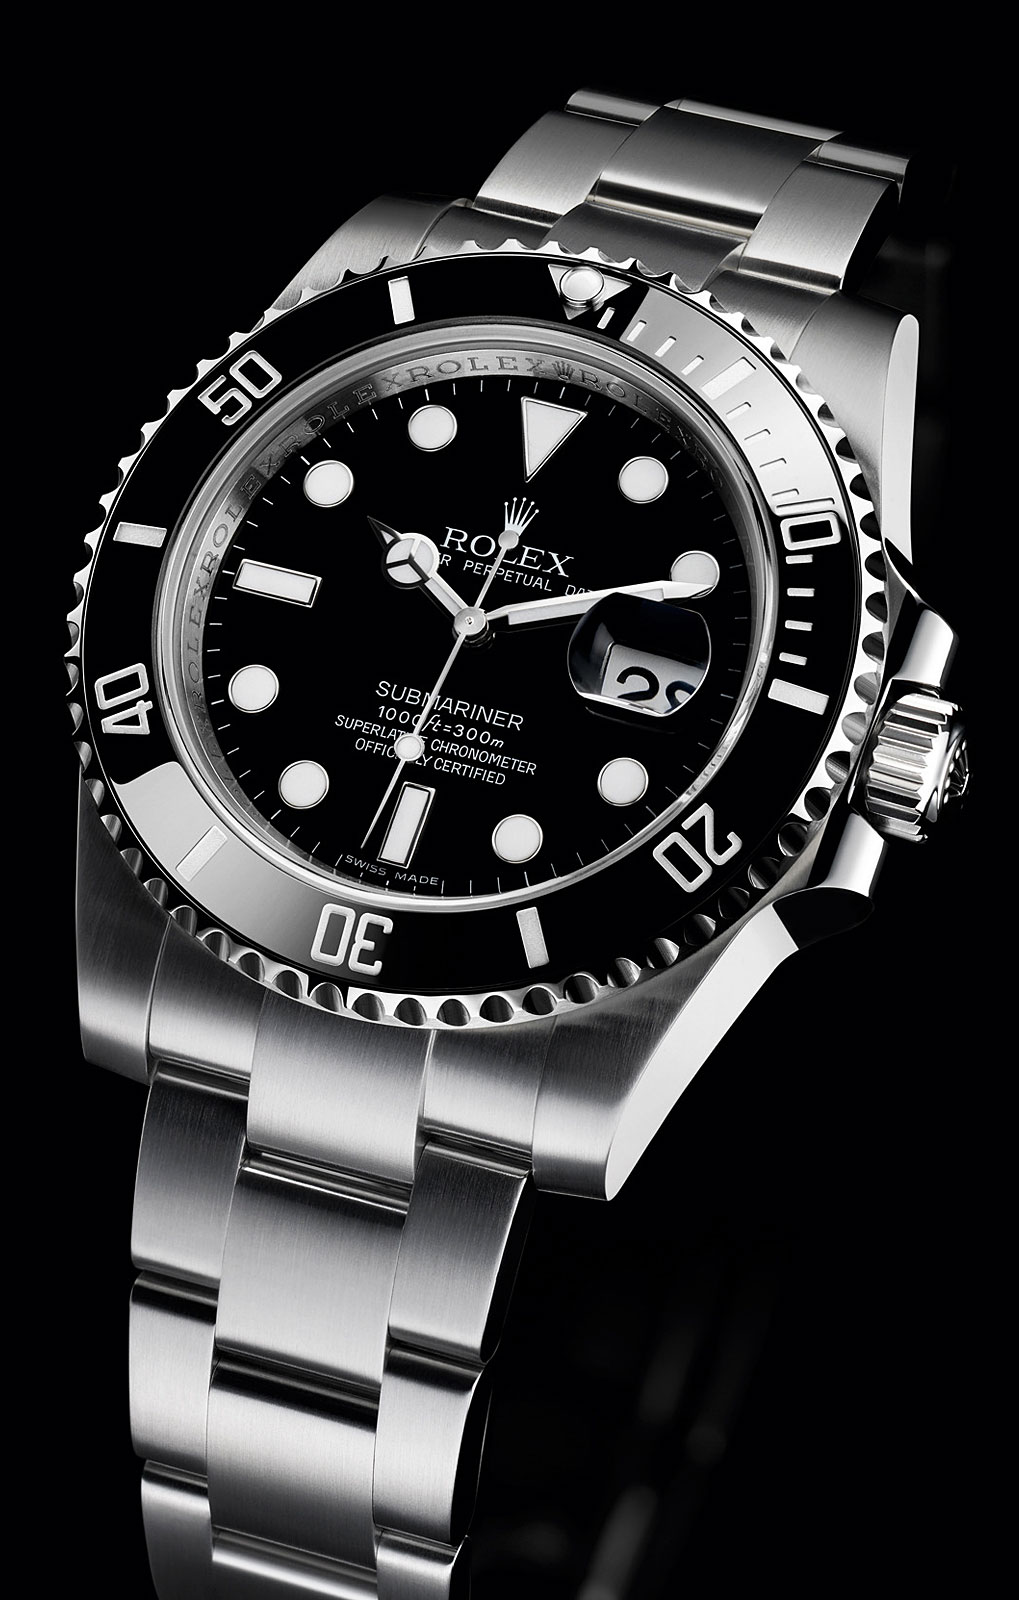 Rolex ceramic bezel submariner